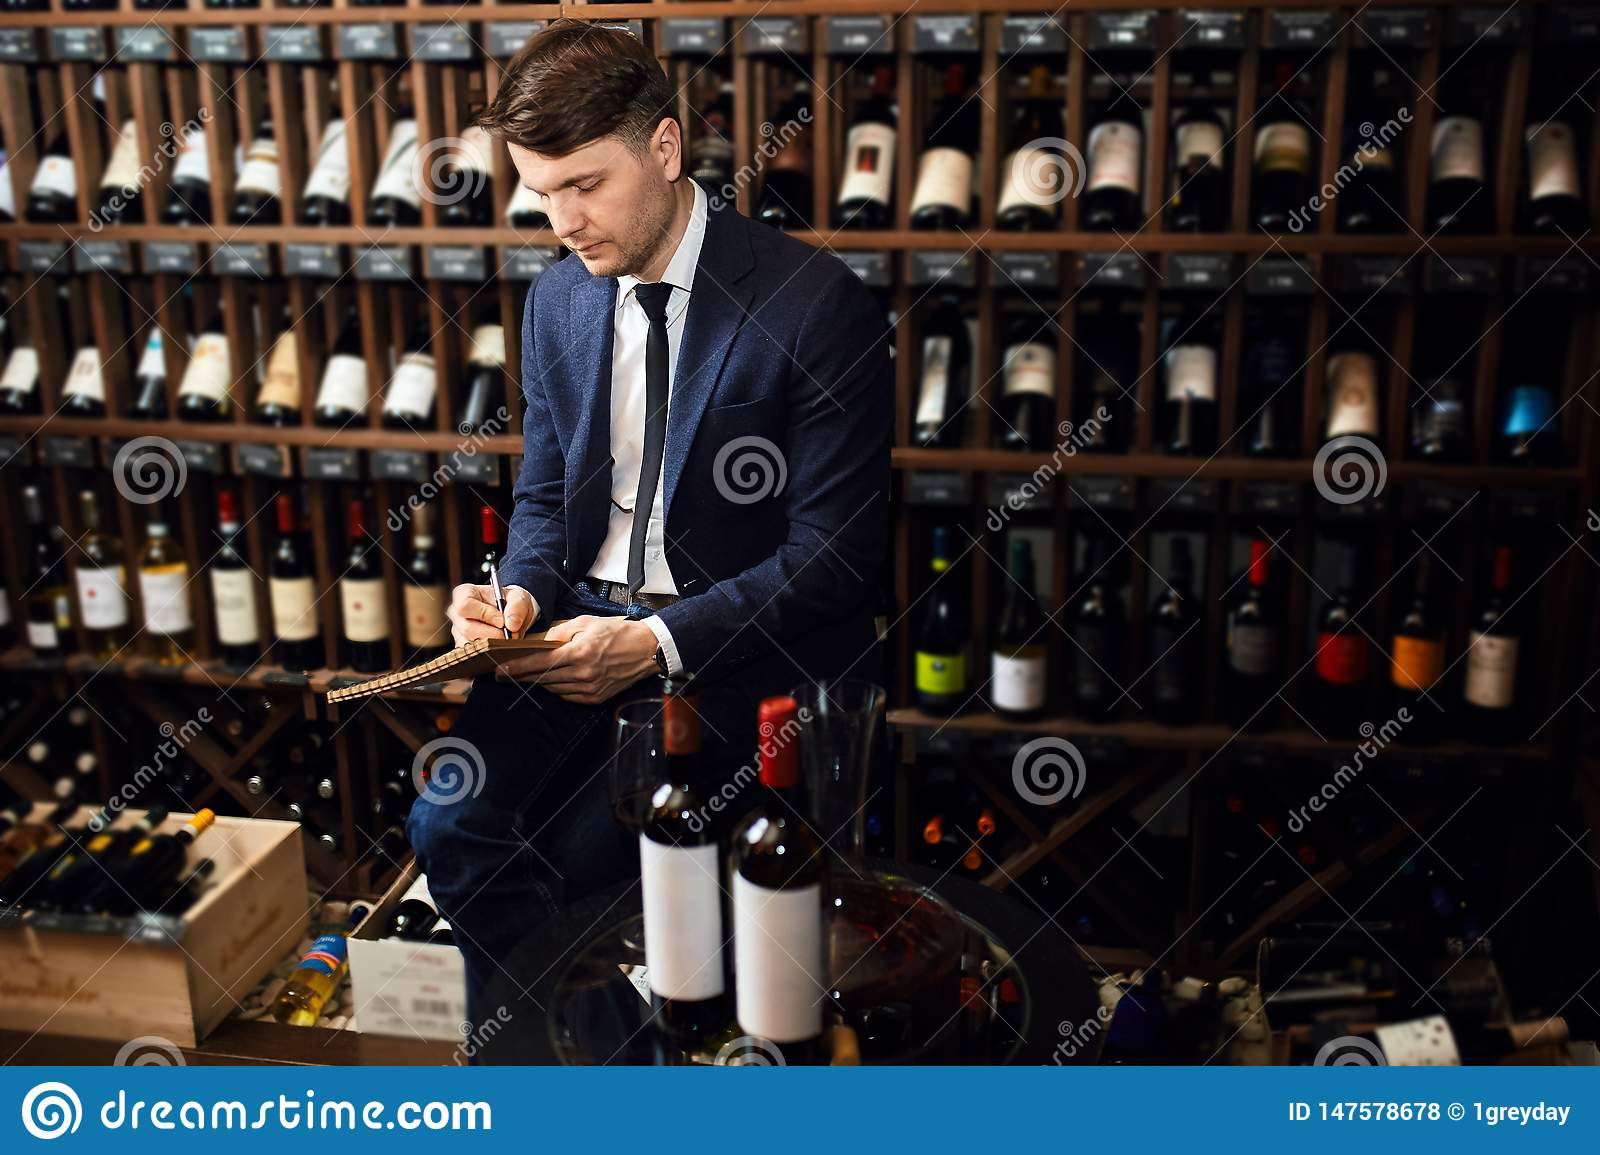 Creating a diverse wine list at price points for all diners